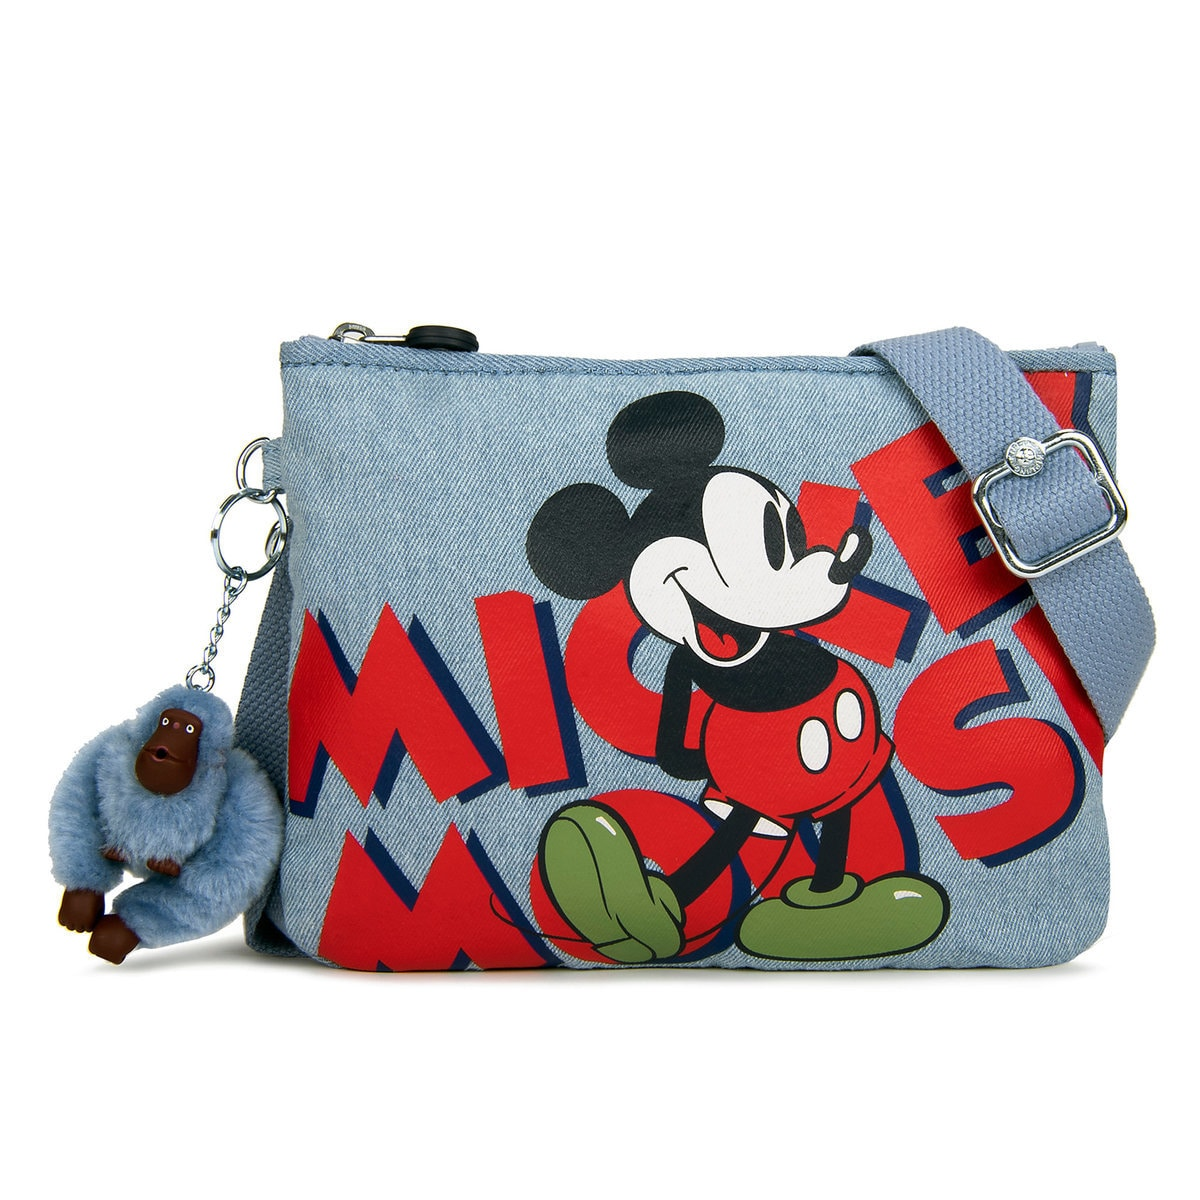 dafe99f87bc Product Image of Mickey Mouse Crossbody Bag by Kipling   1